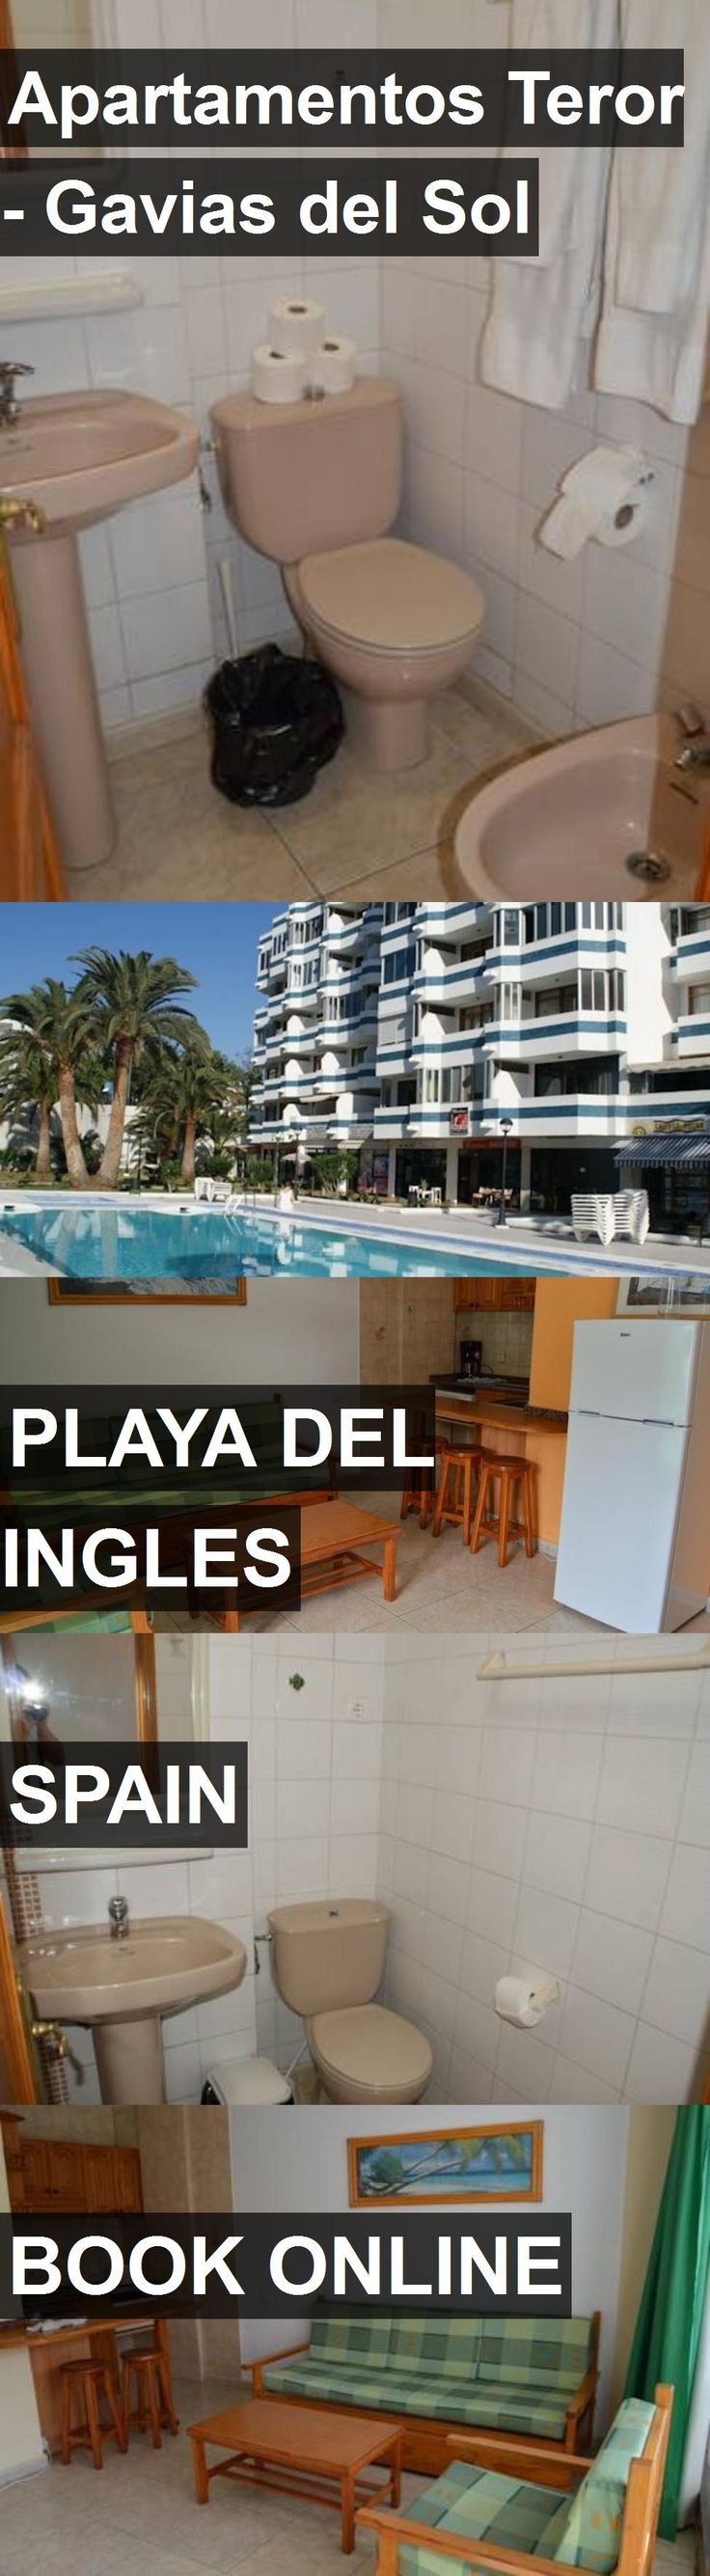 Hotel Apartamentos Teror - Gavias del Sol in Playa del Ingles, Spain. For more information, photos, reviews and best prices please follow the link. #Spain #PlayadelIngles #travel #vacation #hotel